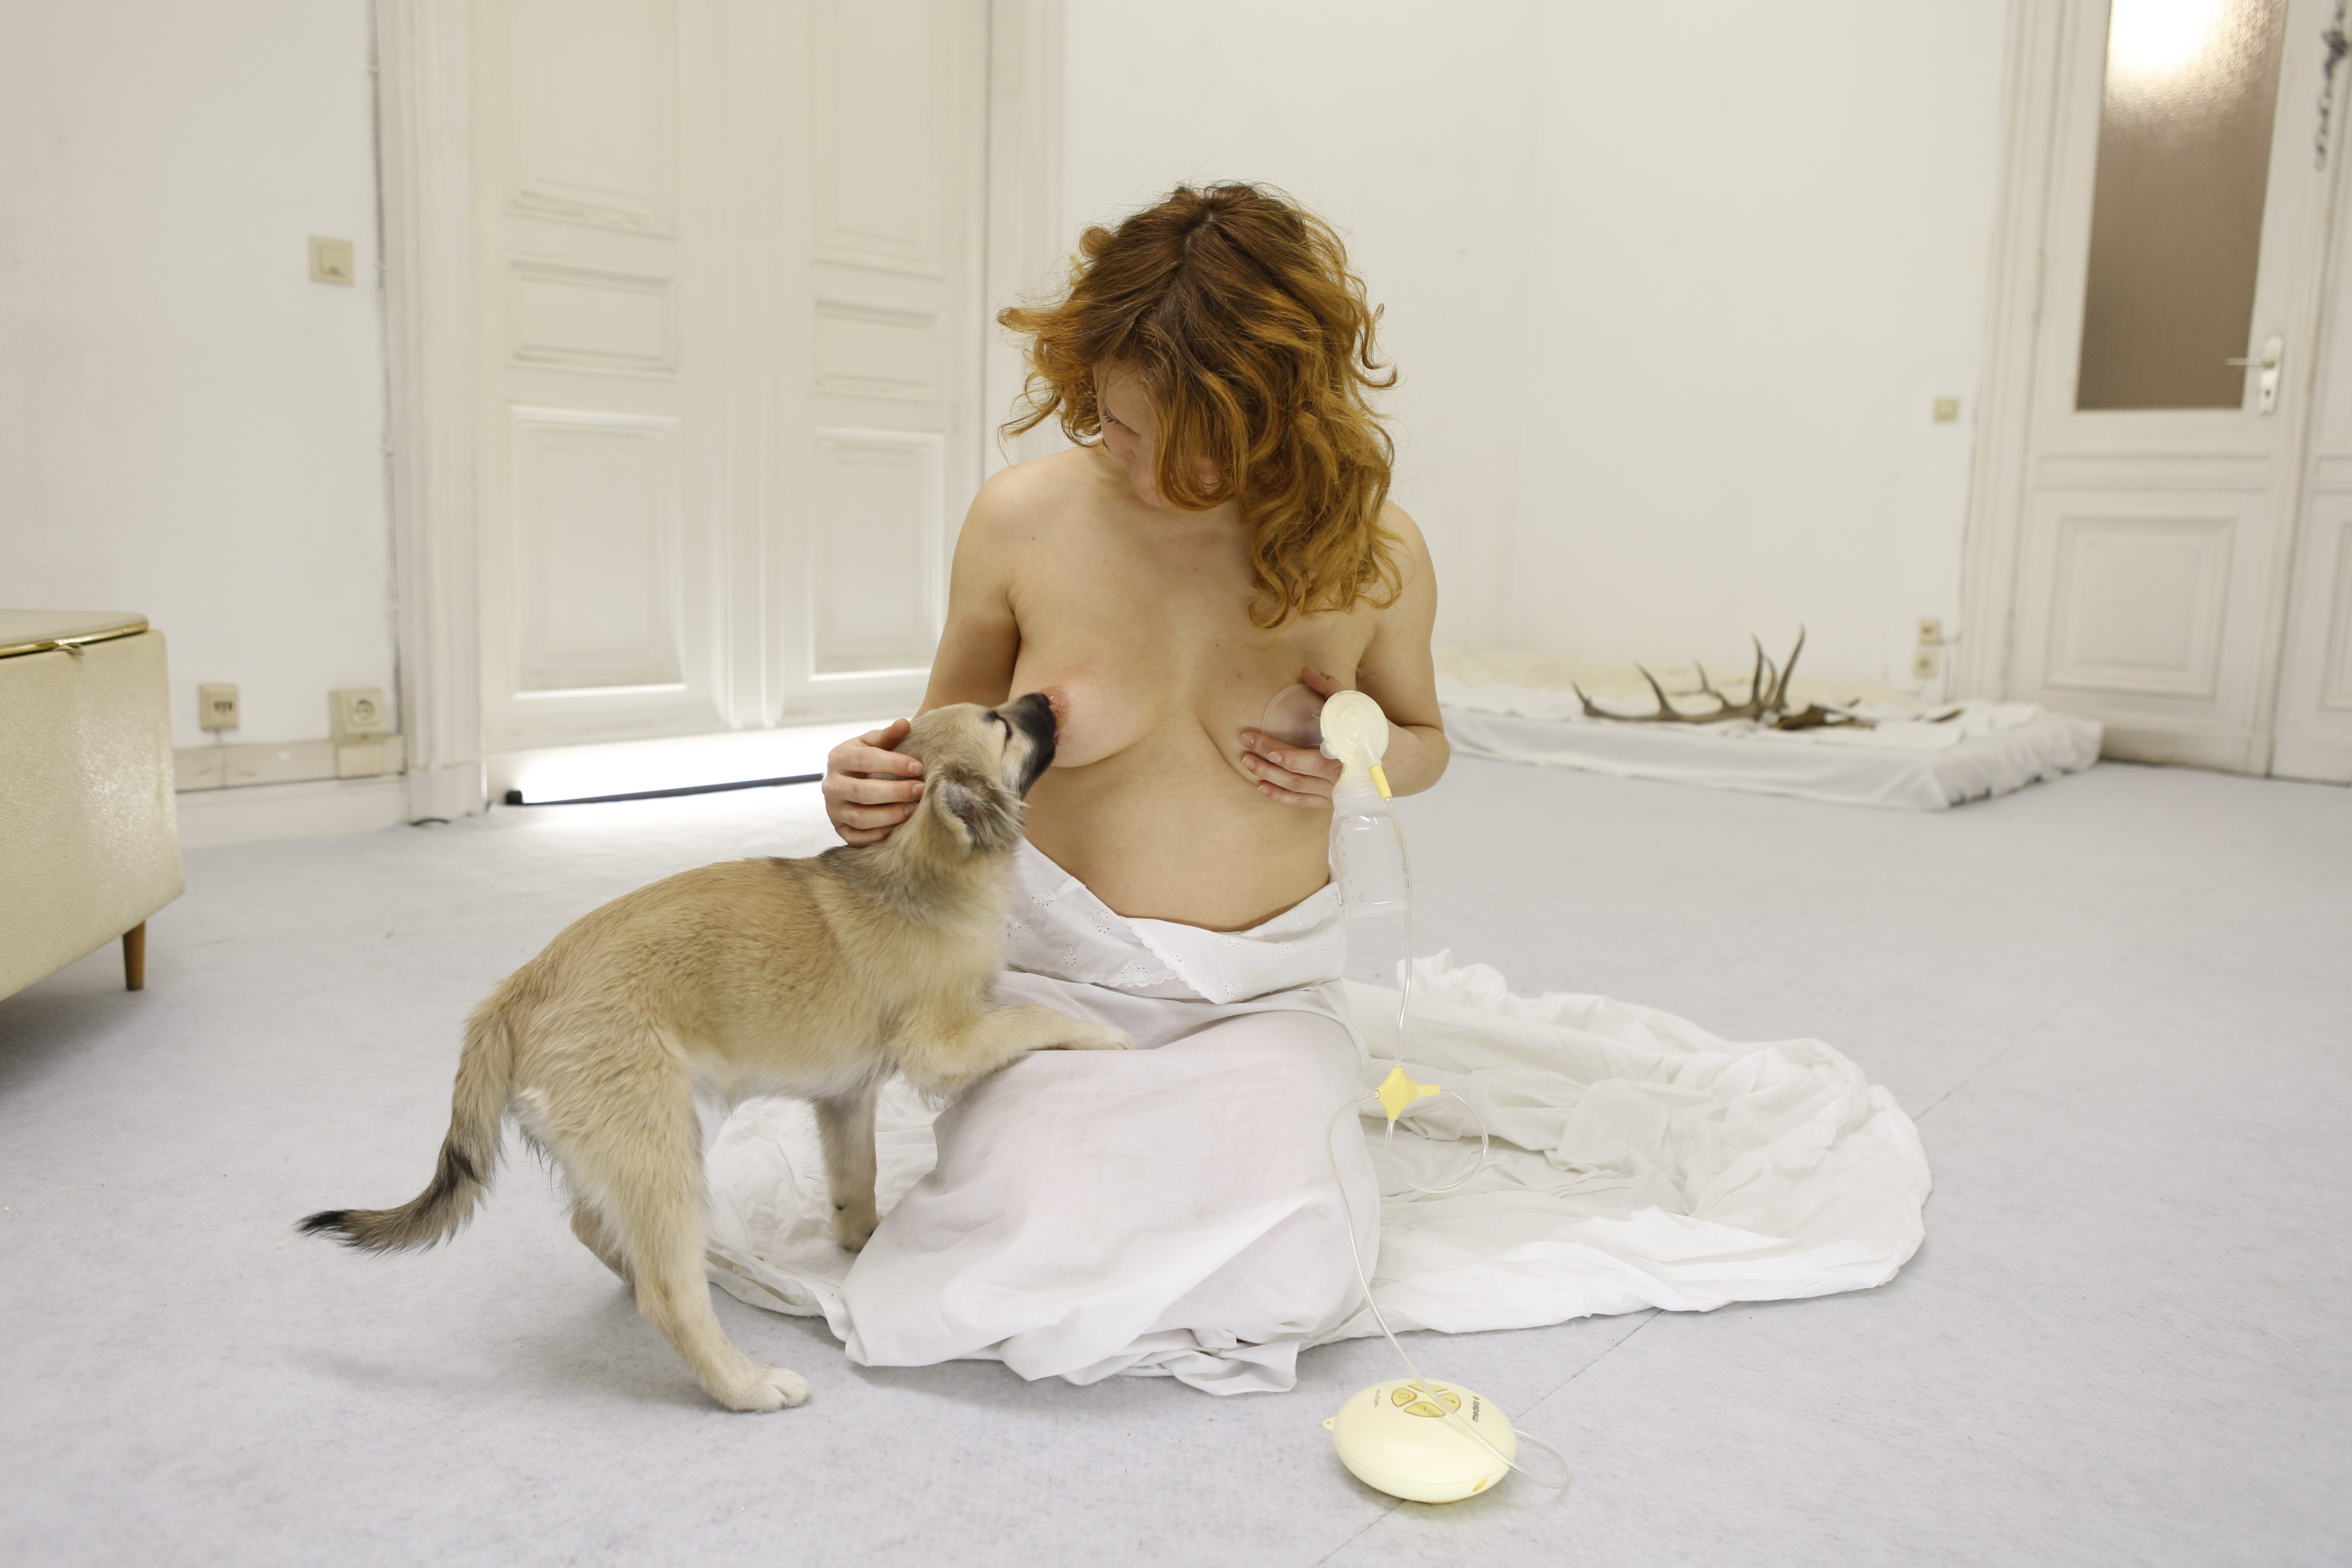 Woman with doglike breasts